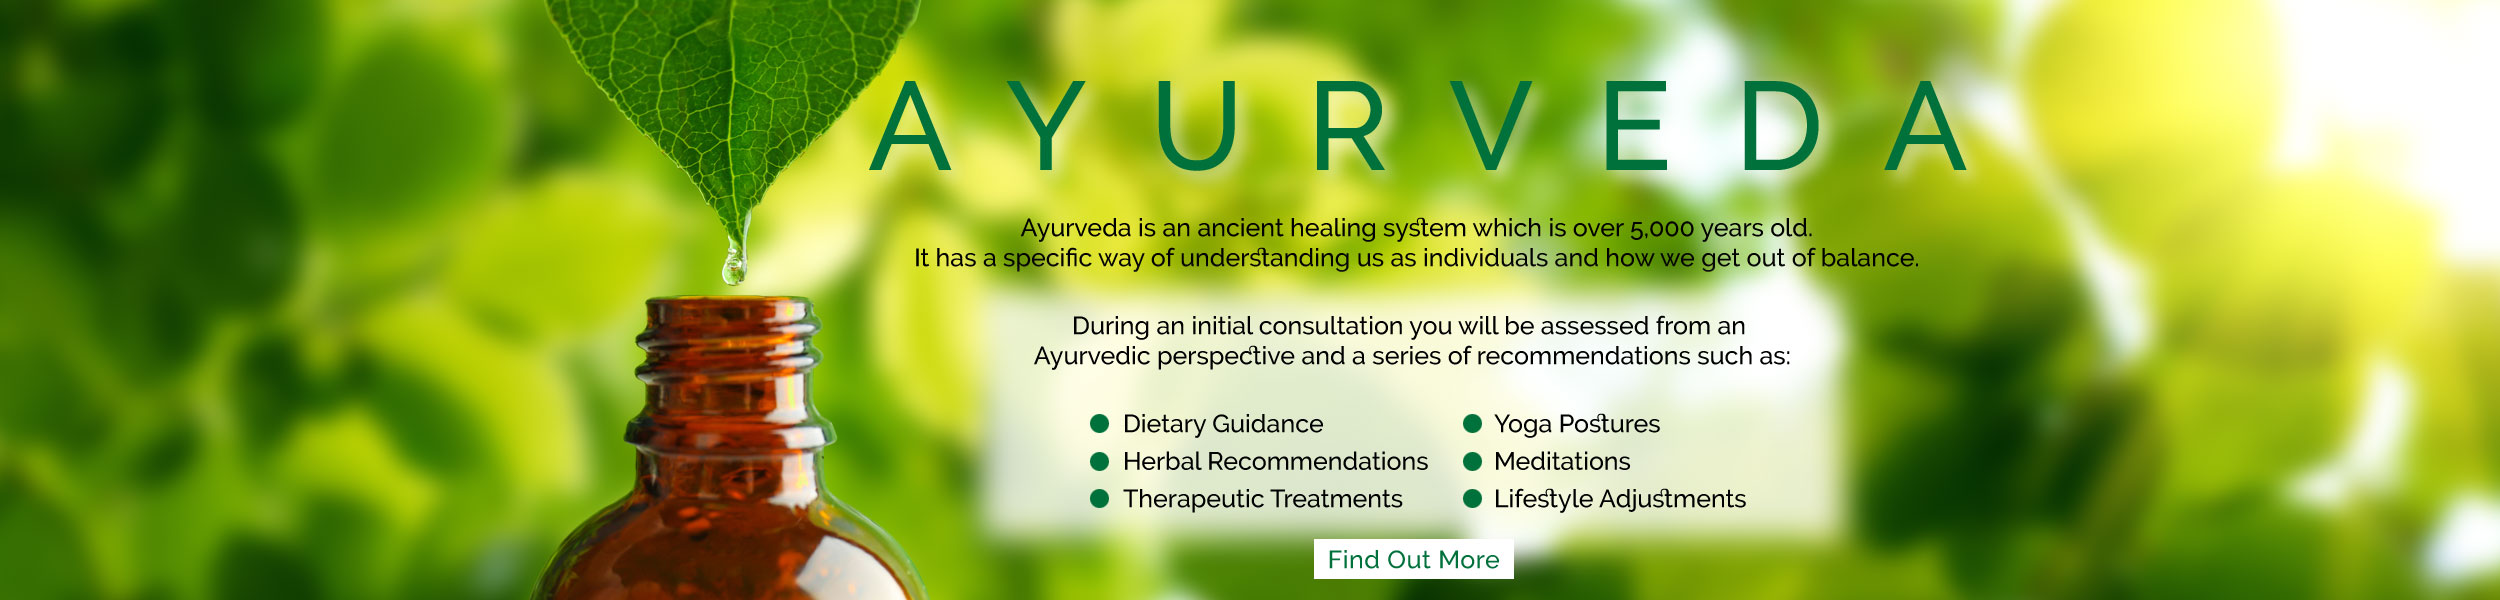 Ayurveda // Home slider // Eat & Breathe // Ayurveda is an ancient healing system which is over 5,000 years old.